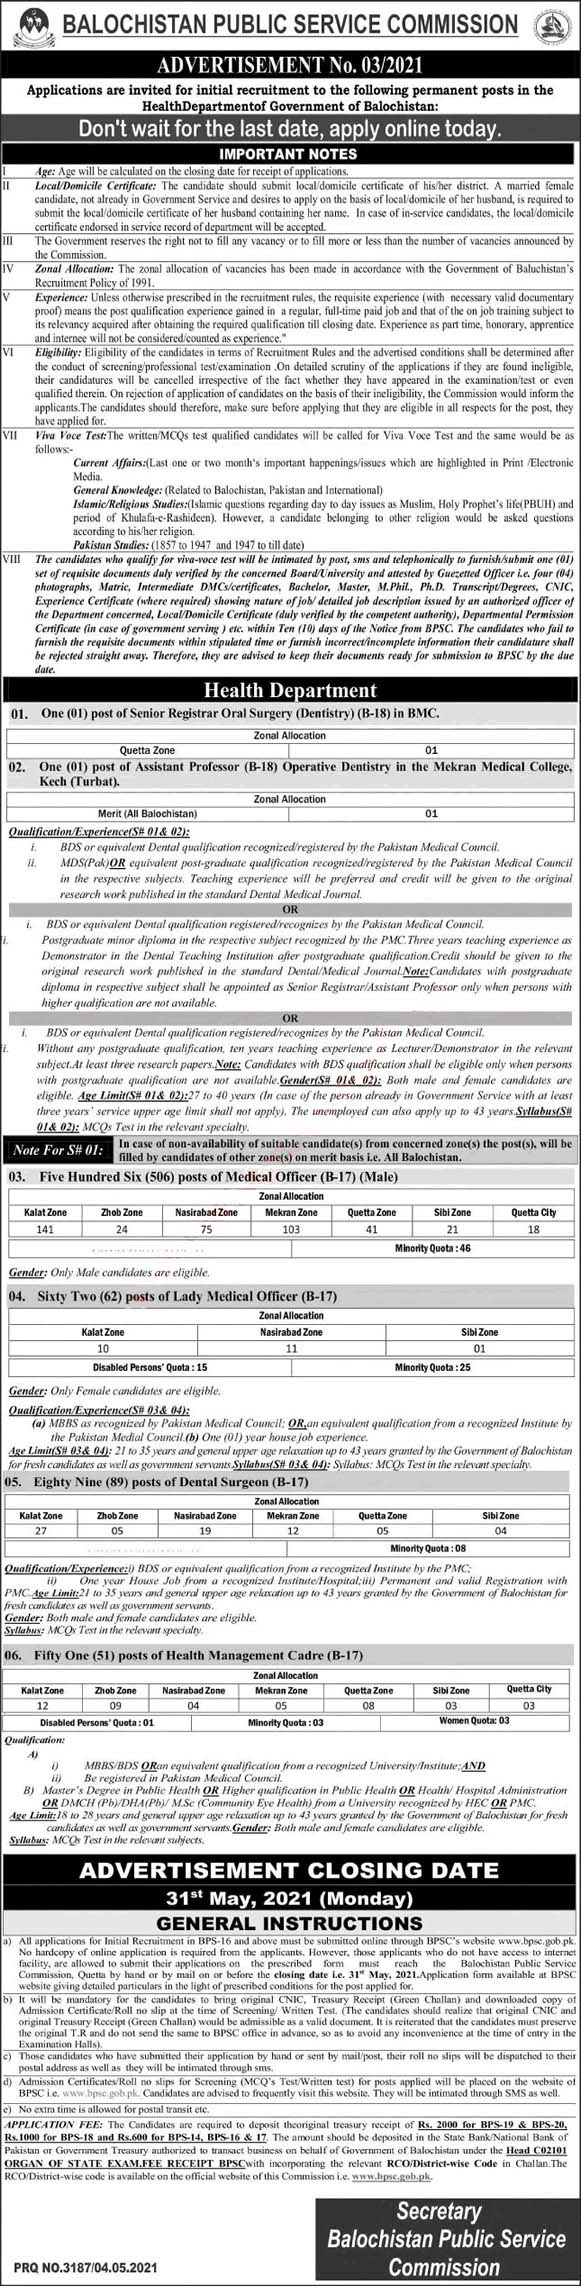 New Jobs in Health Department BPSC Ad No. 032021  Balochistan Public Service Commission BPSC Jobs 2021 by www.newjobs.pk